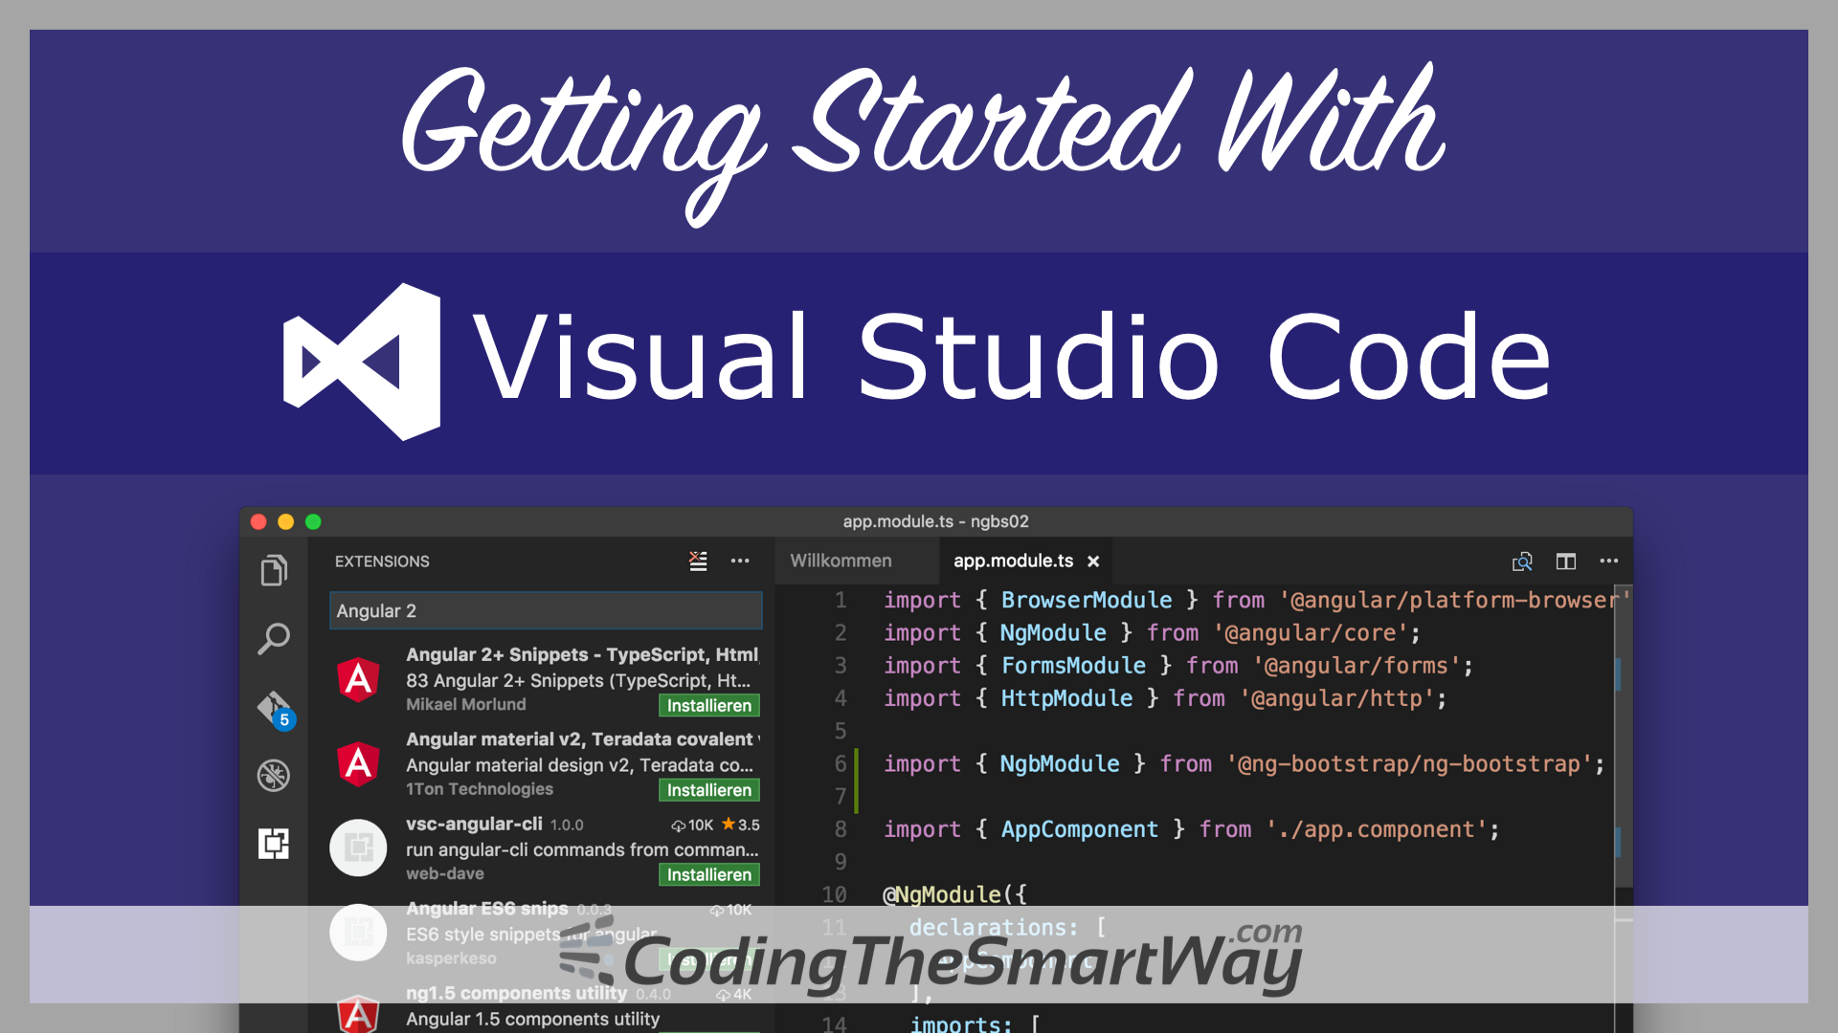 Getting Started With Visual Studio Code - CodingTheSmartWay com Blog